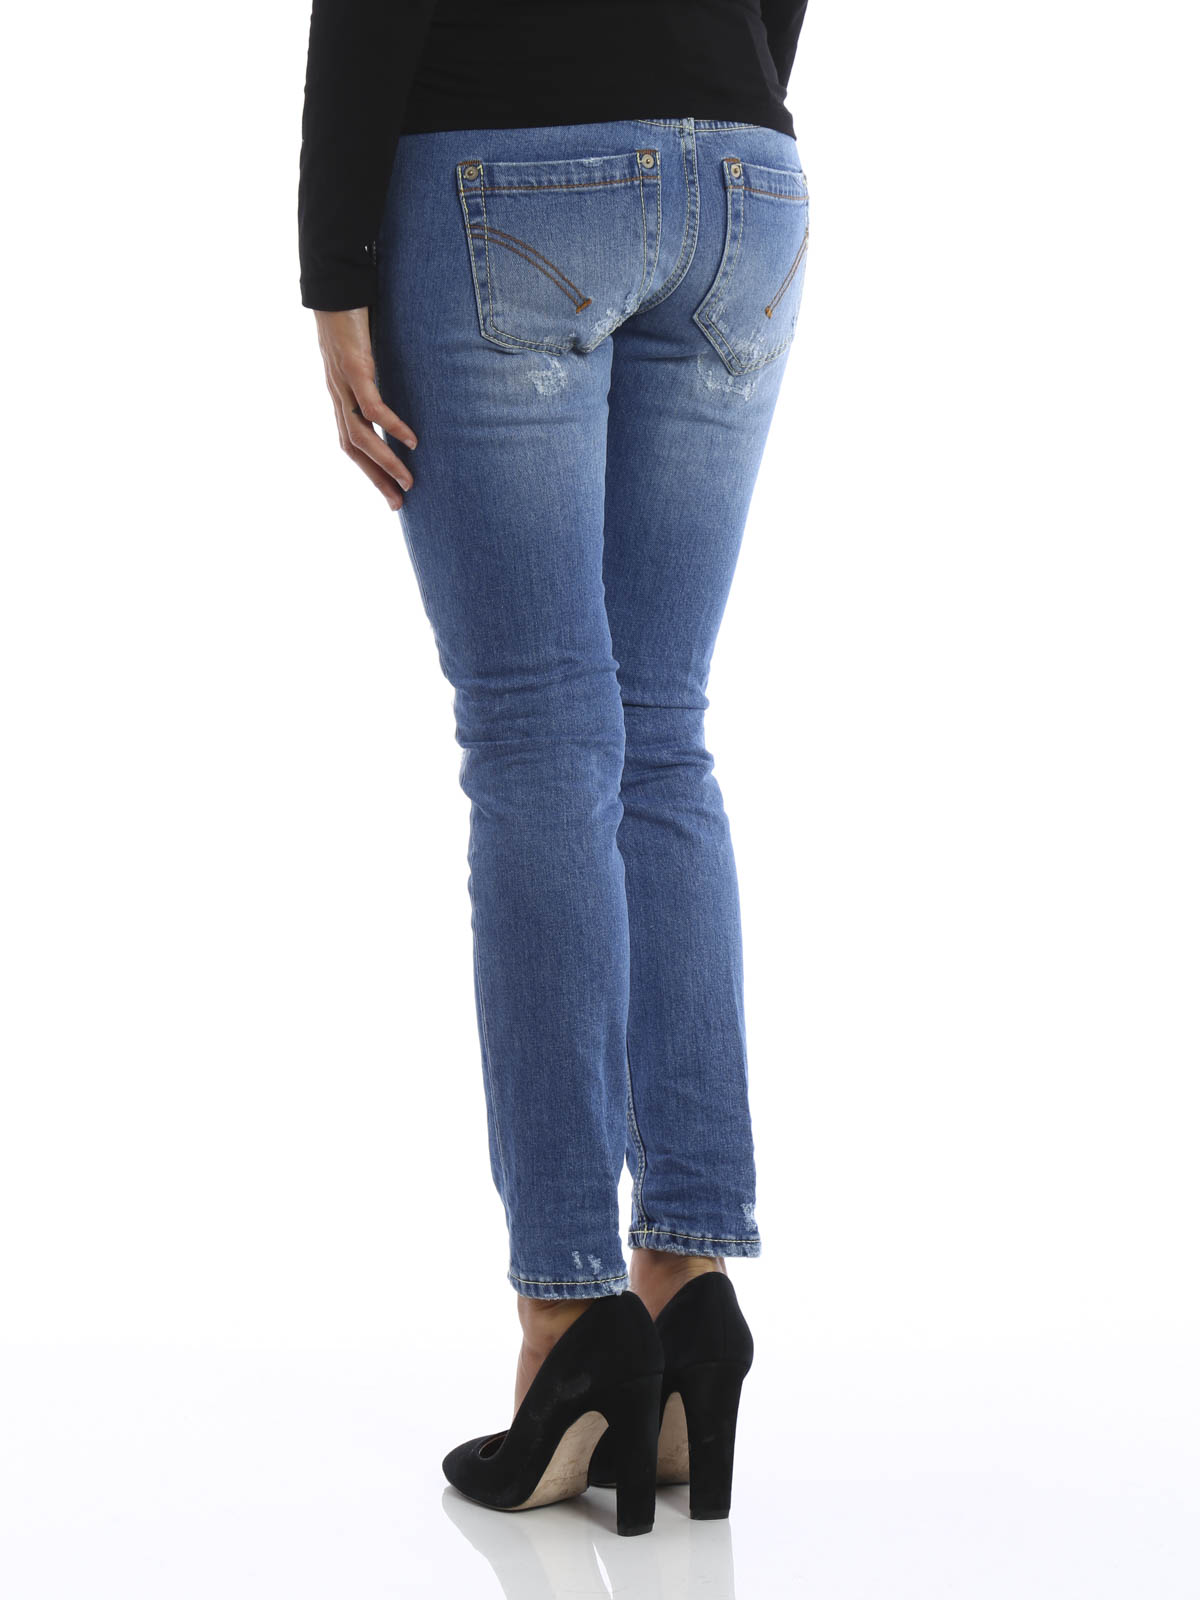 Outlet Explore Buy Cheap Countdown Package Dondup ripped knee skinny jeans q0fLJVKm